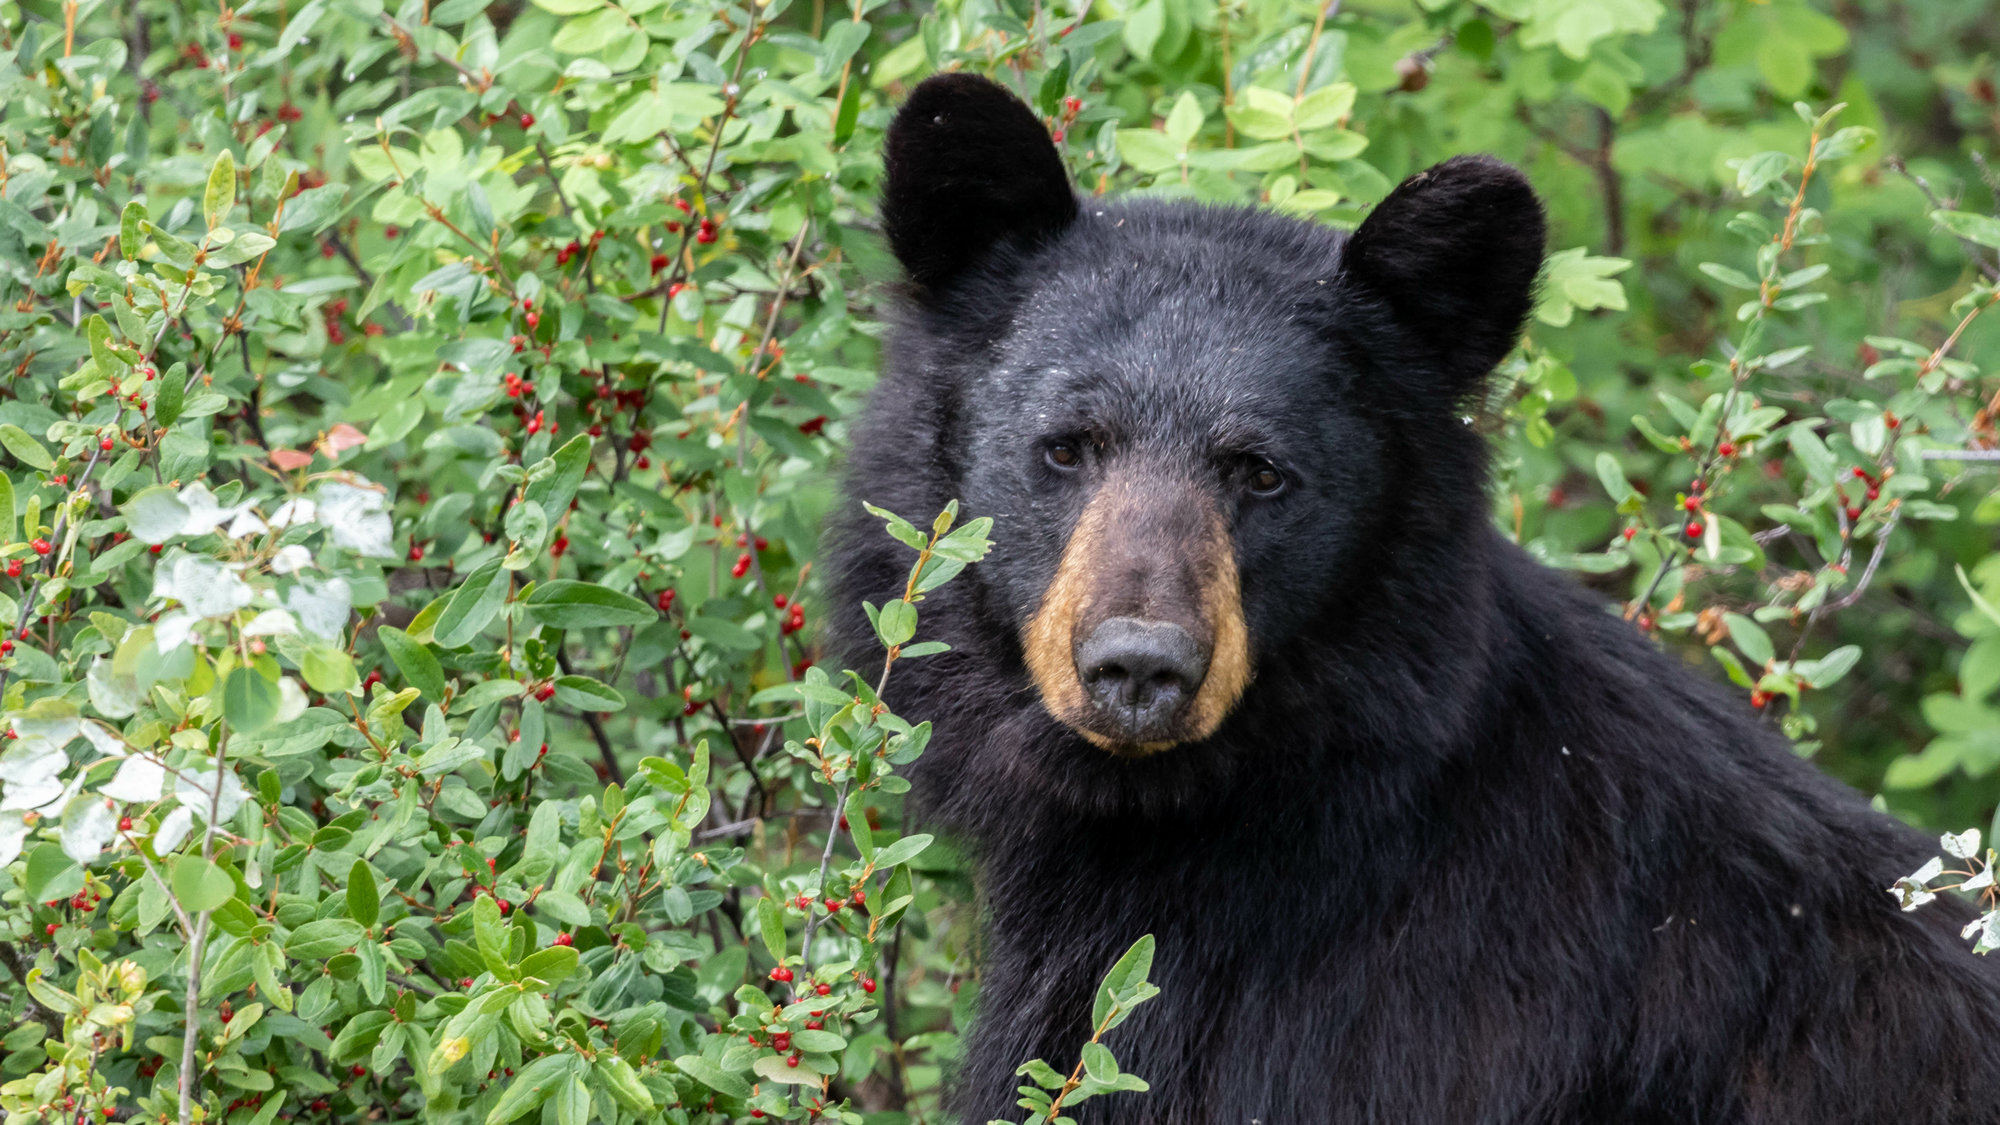 Florida Black Bear - (Ursus americanus floridanus) is the only species of bear found in Florida